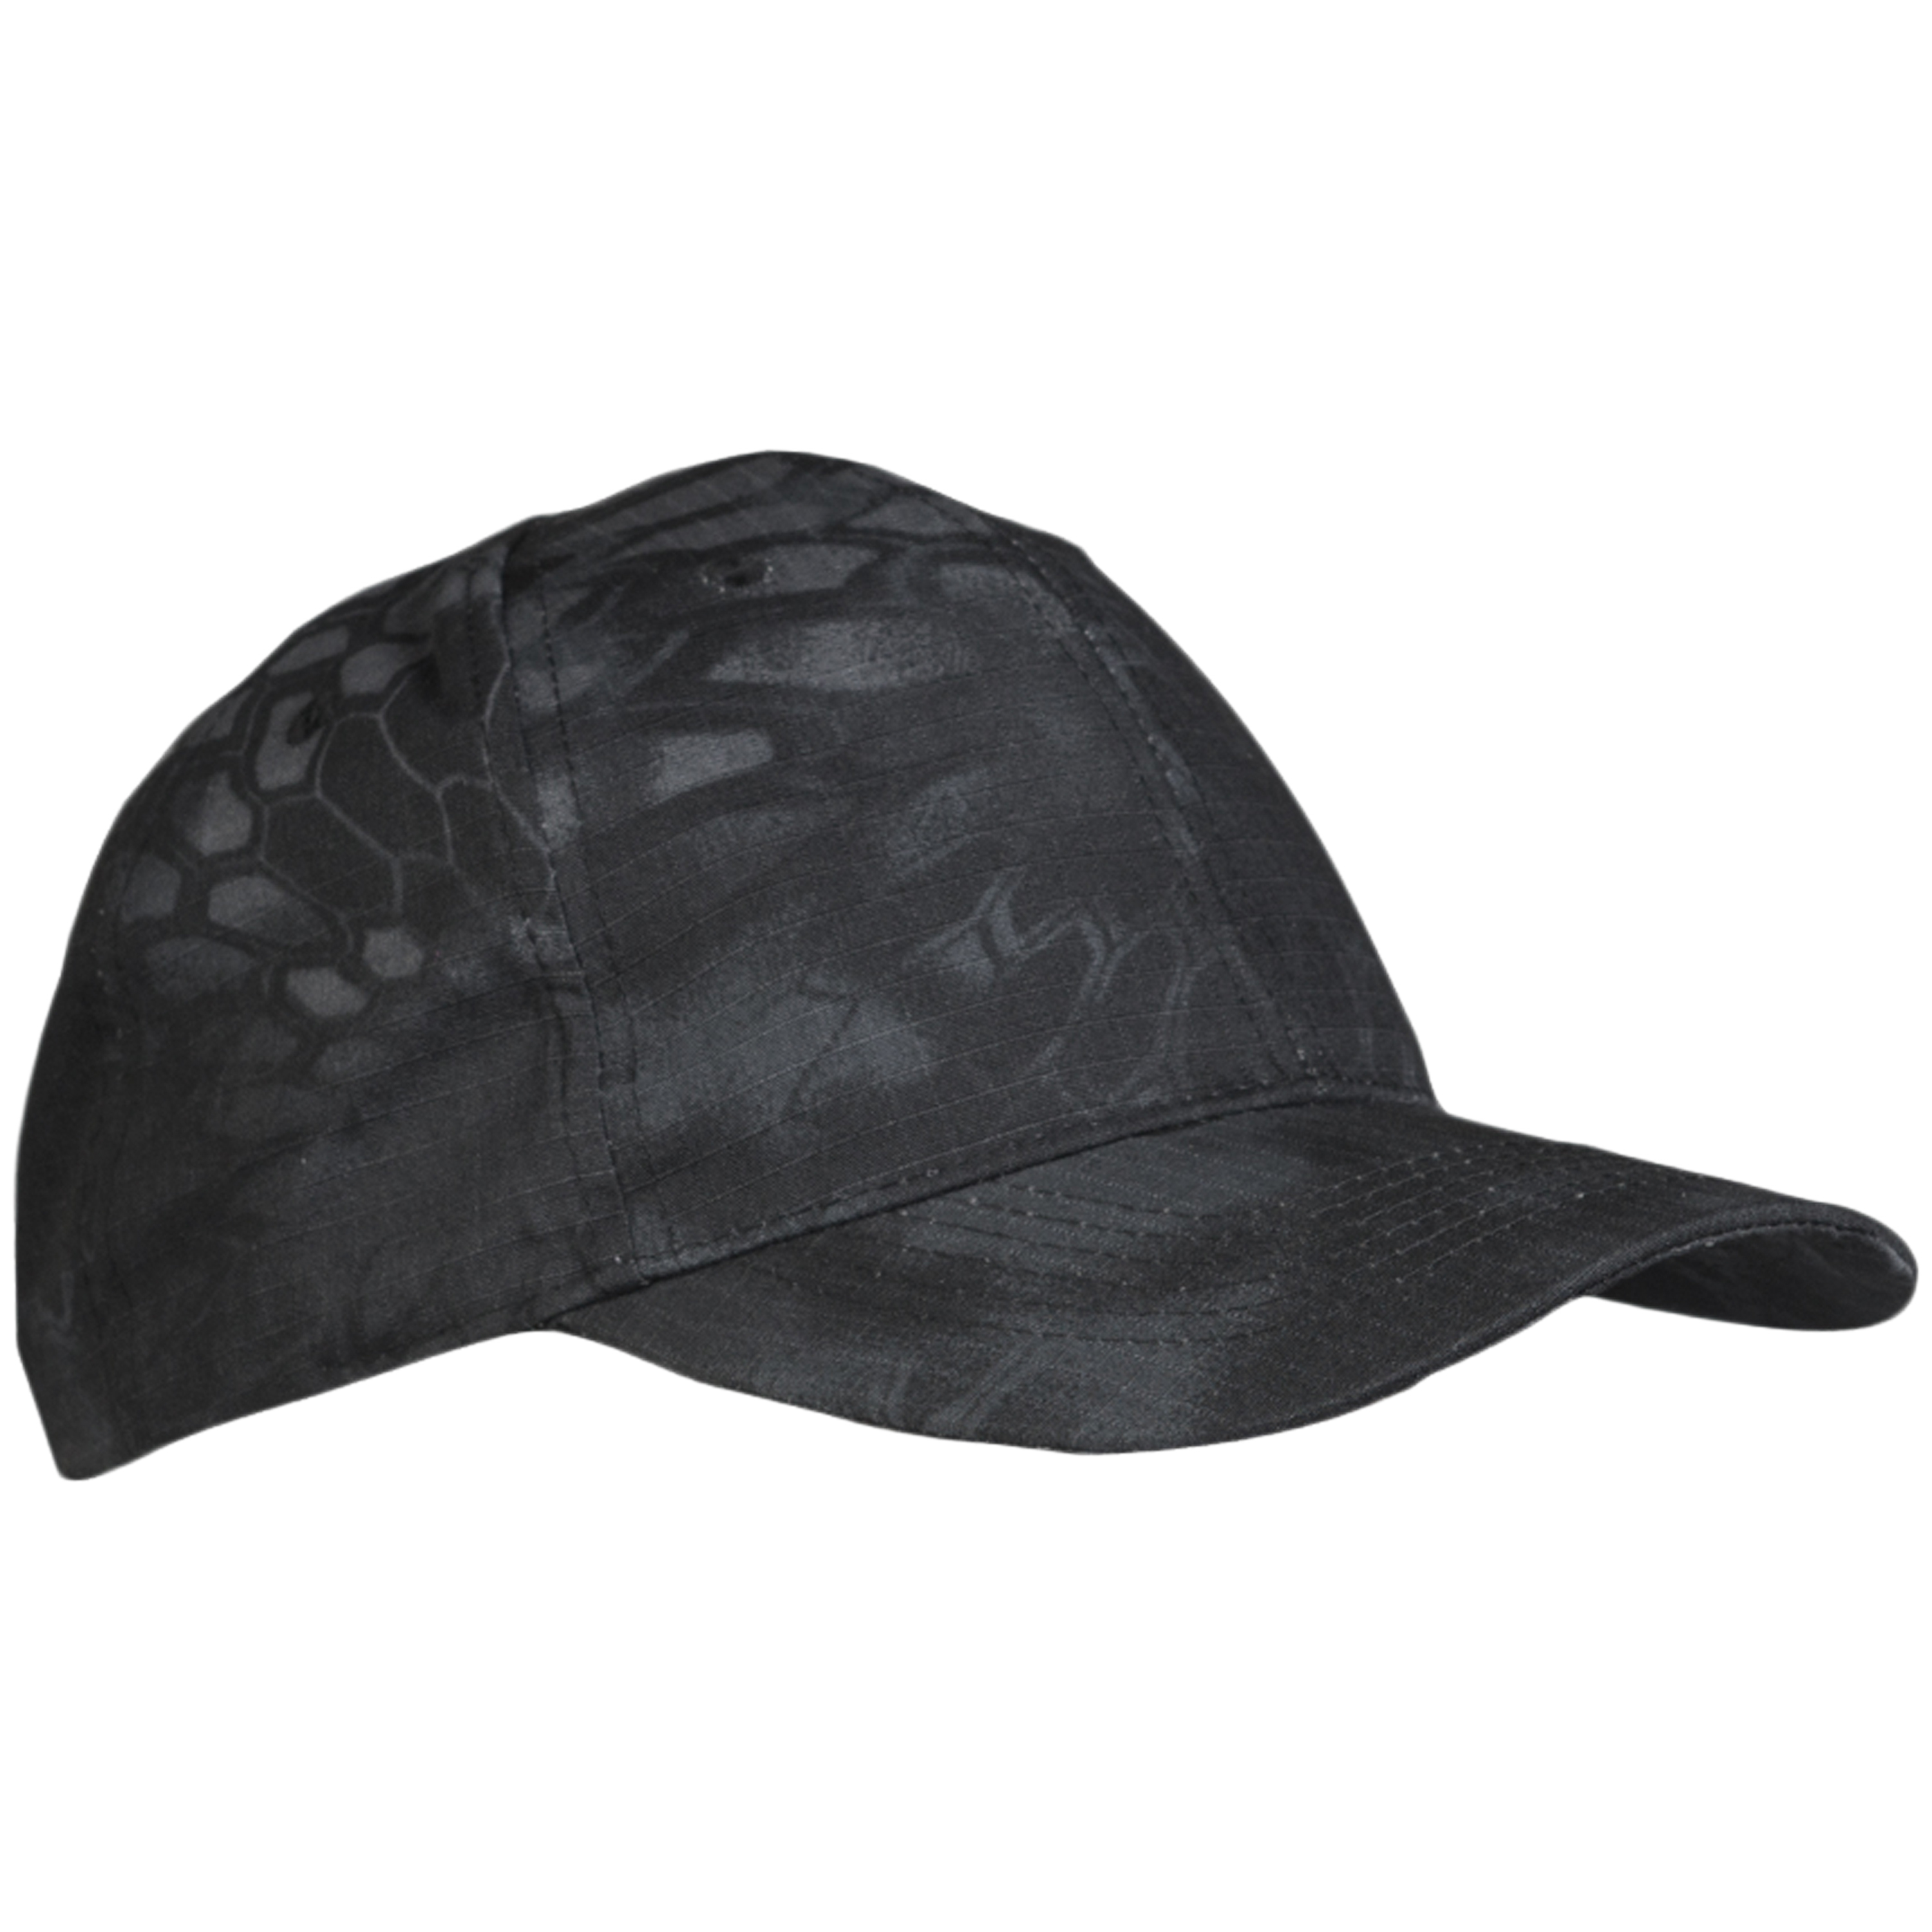 Baseball Cap mandra night